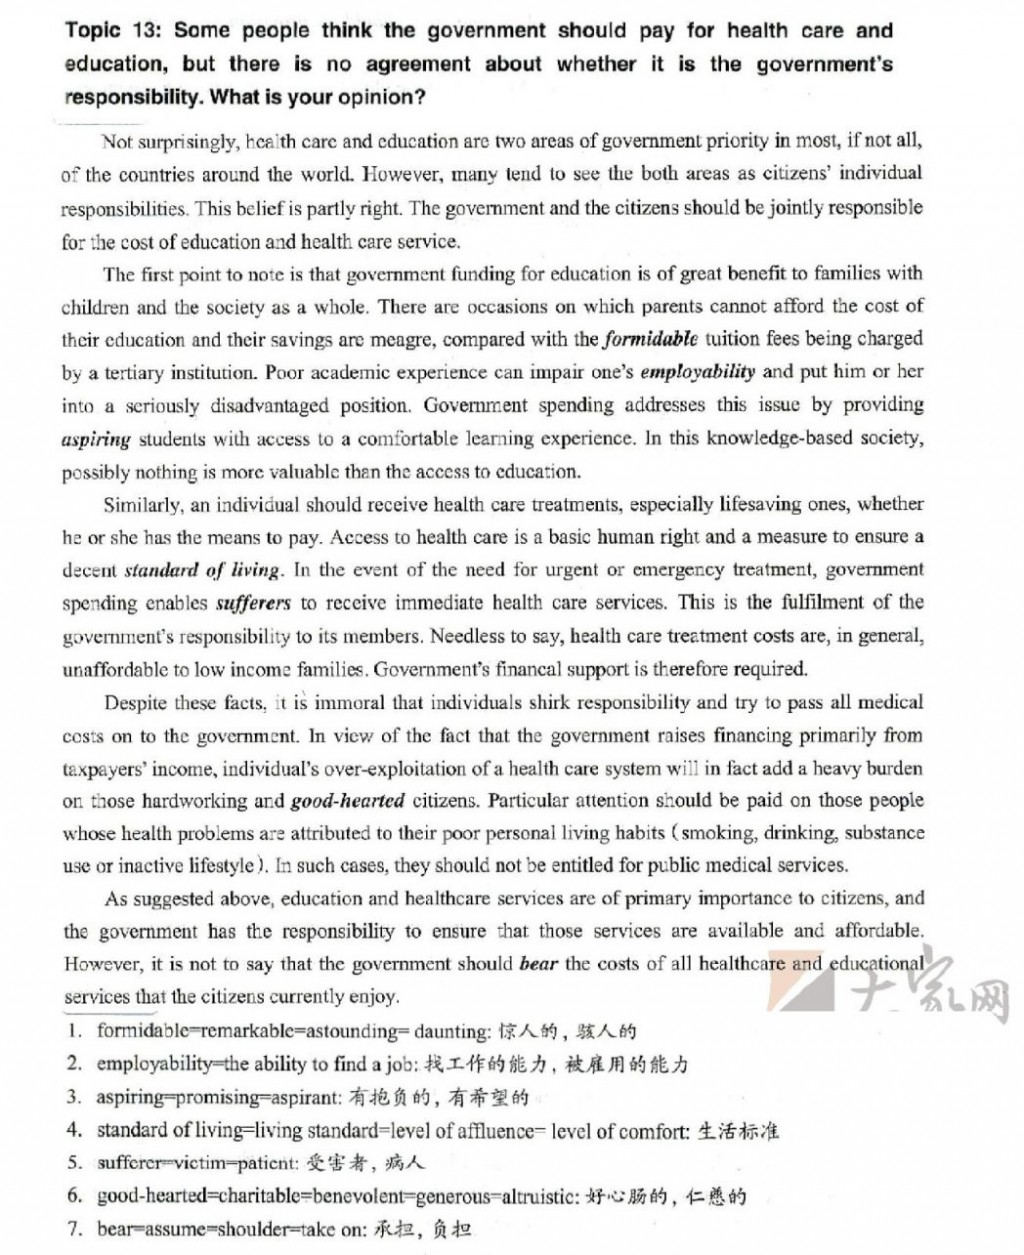 017 Toefl Ibt Essay Topics Topic Sample Writing Highschool With Answers Independent Pdf 1048x1285 Striking 2015 Large